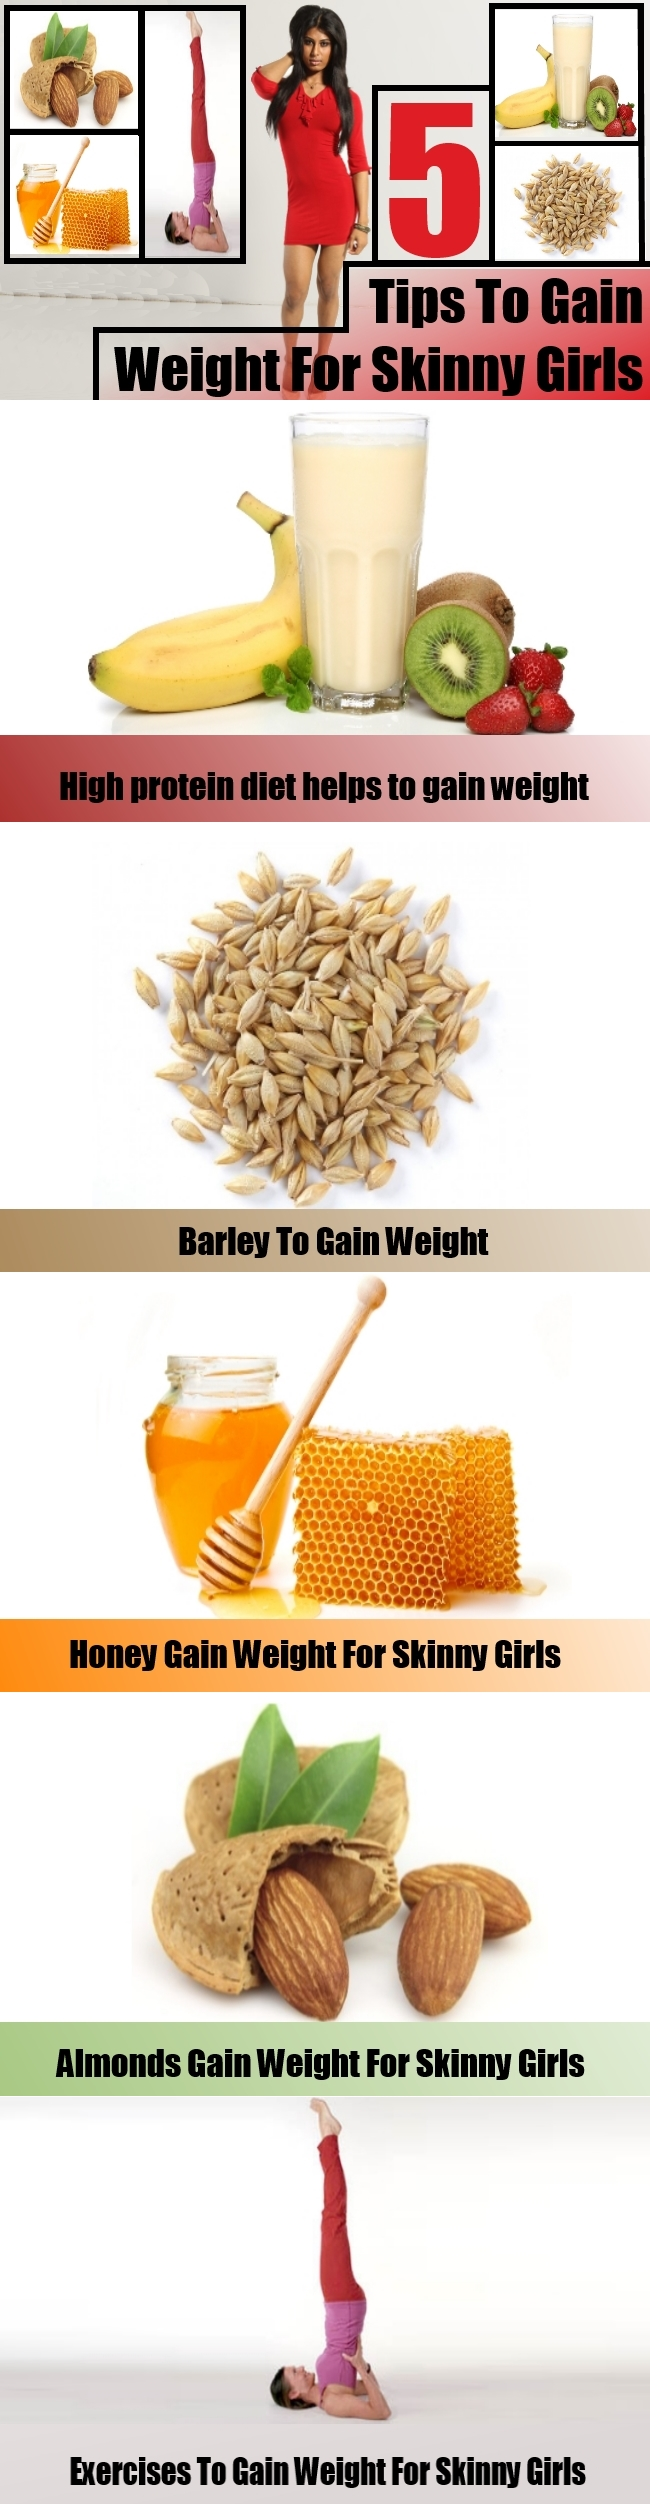 5 Tips To Gain Weight For Skinny Girls